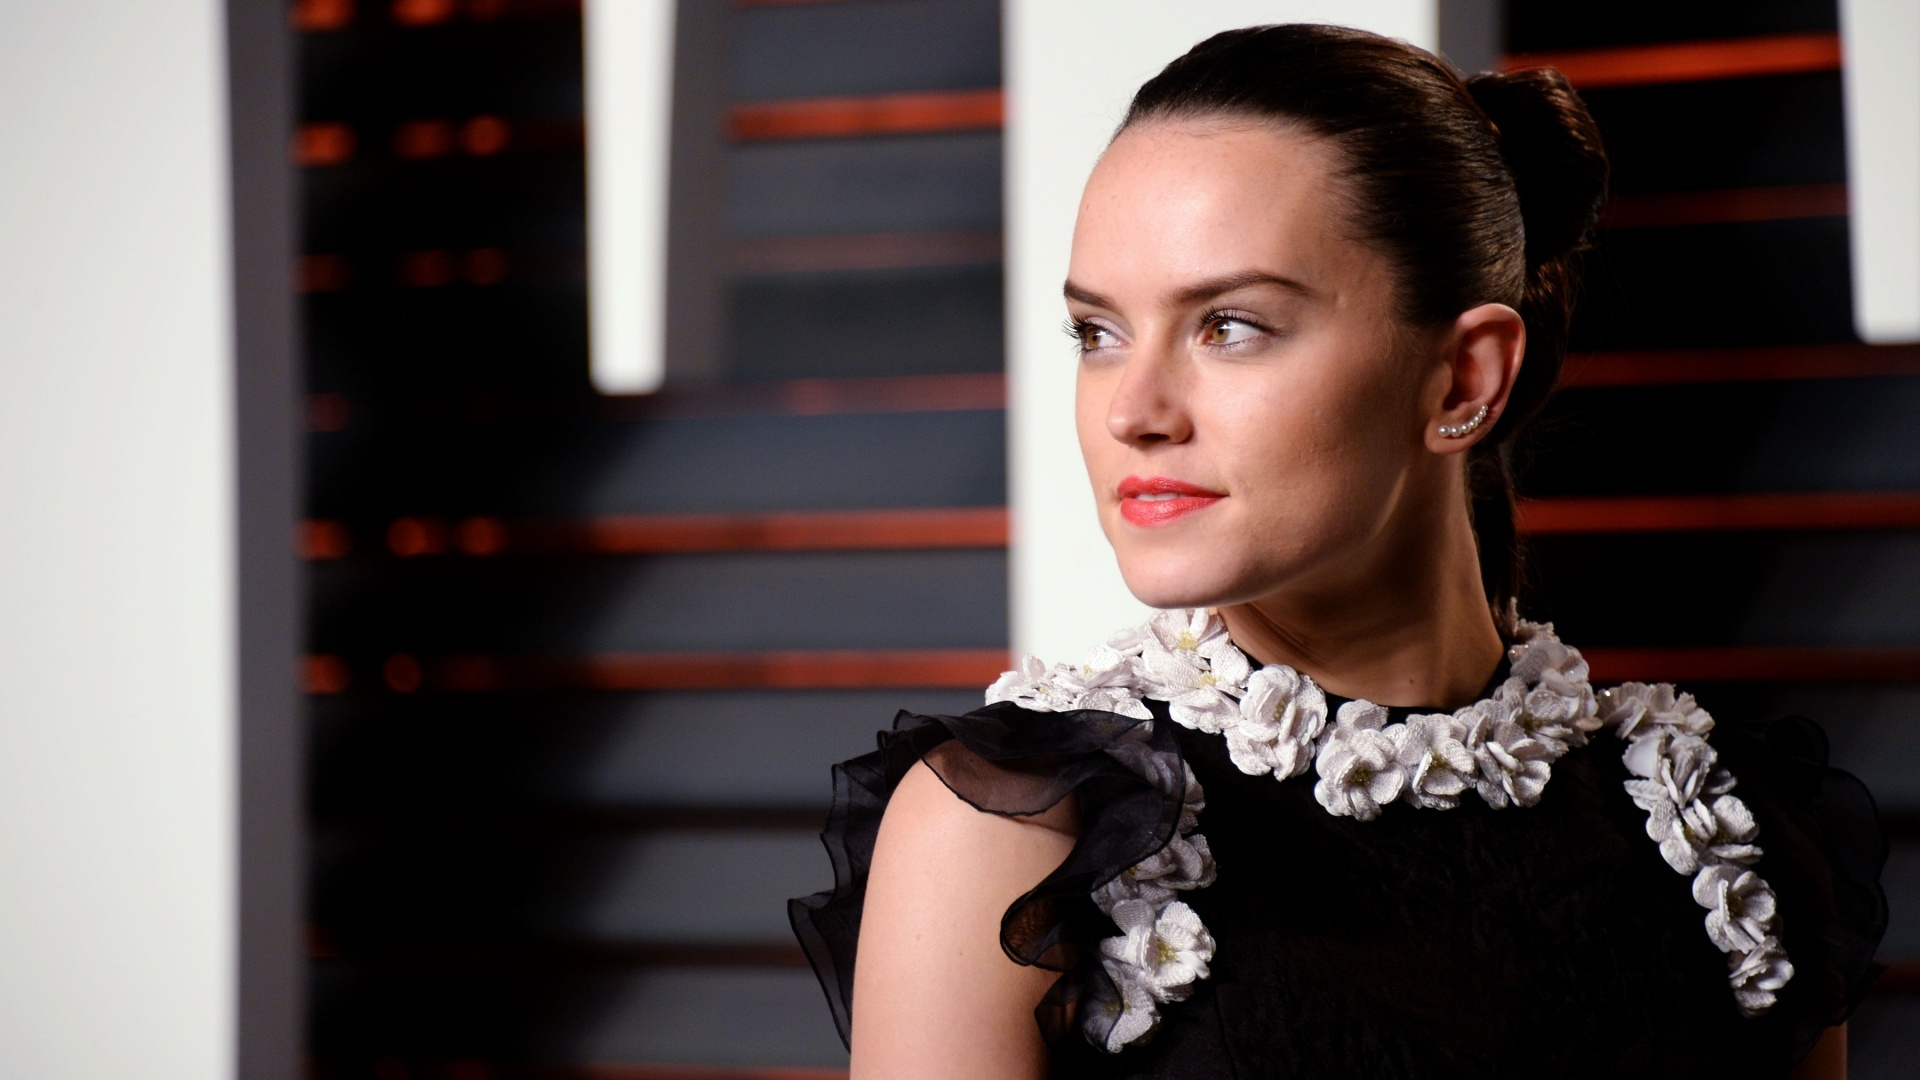 Daisy Ridley has shared a person detail about her health (Clint Spaulding/AP)